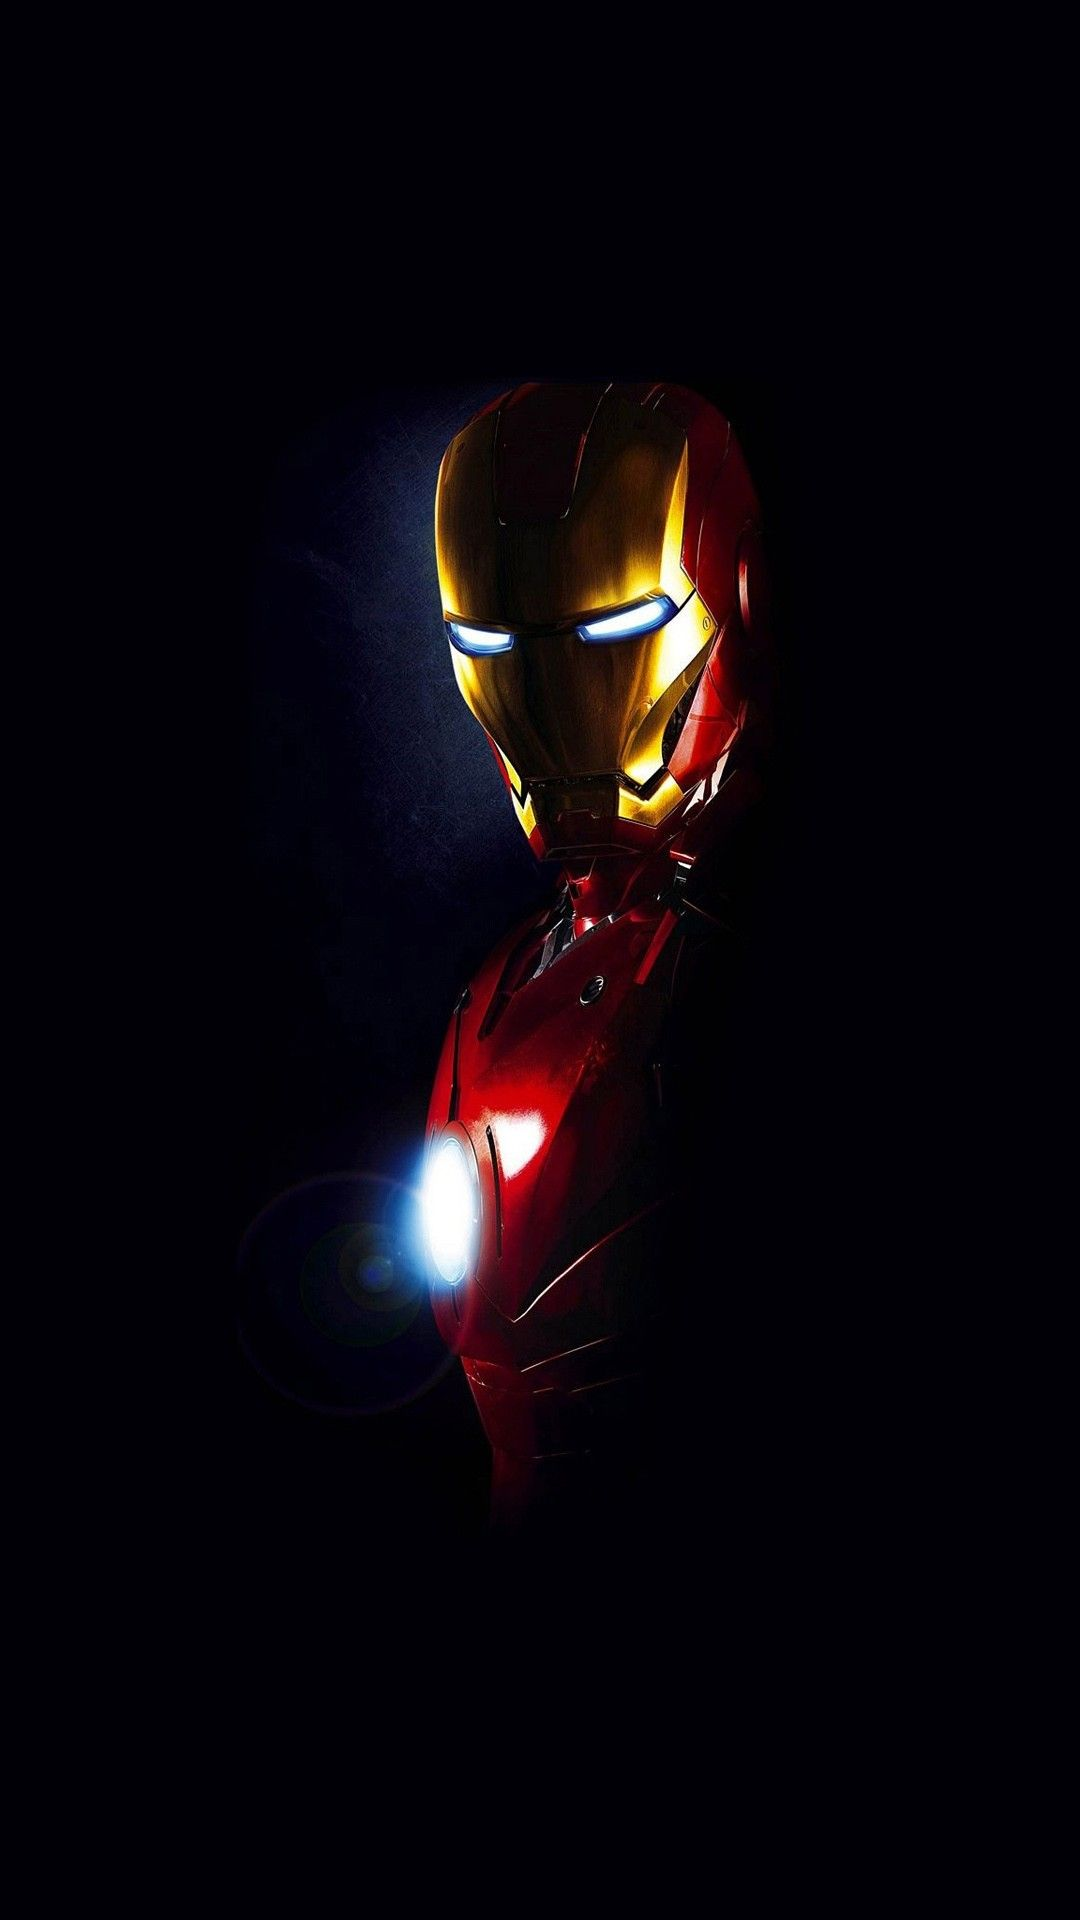 Iron Man Shadow Minimal Smartphone Wallpaper And Lockscreen Hd